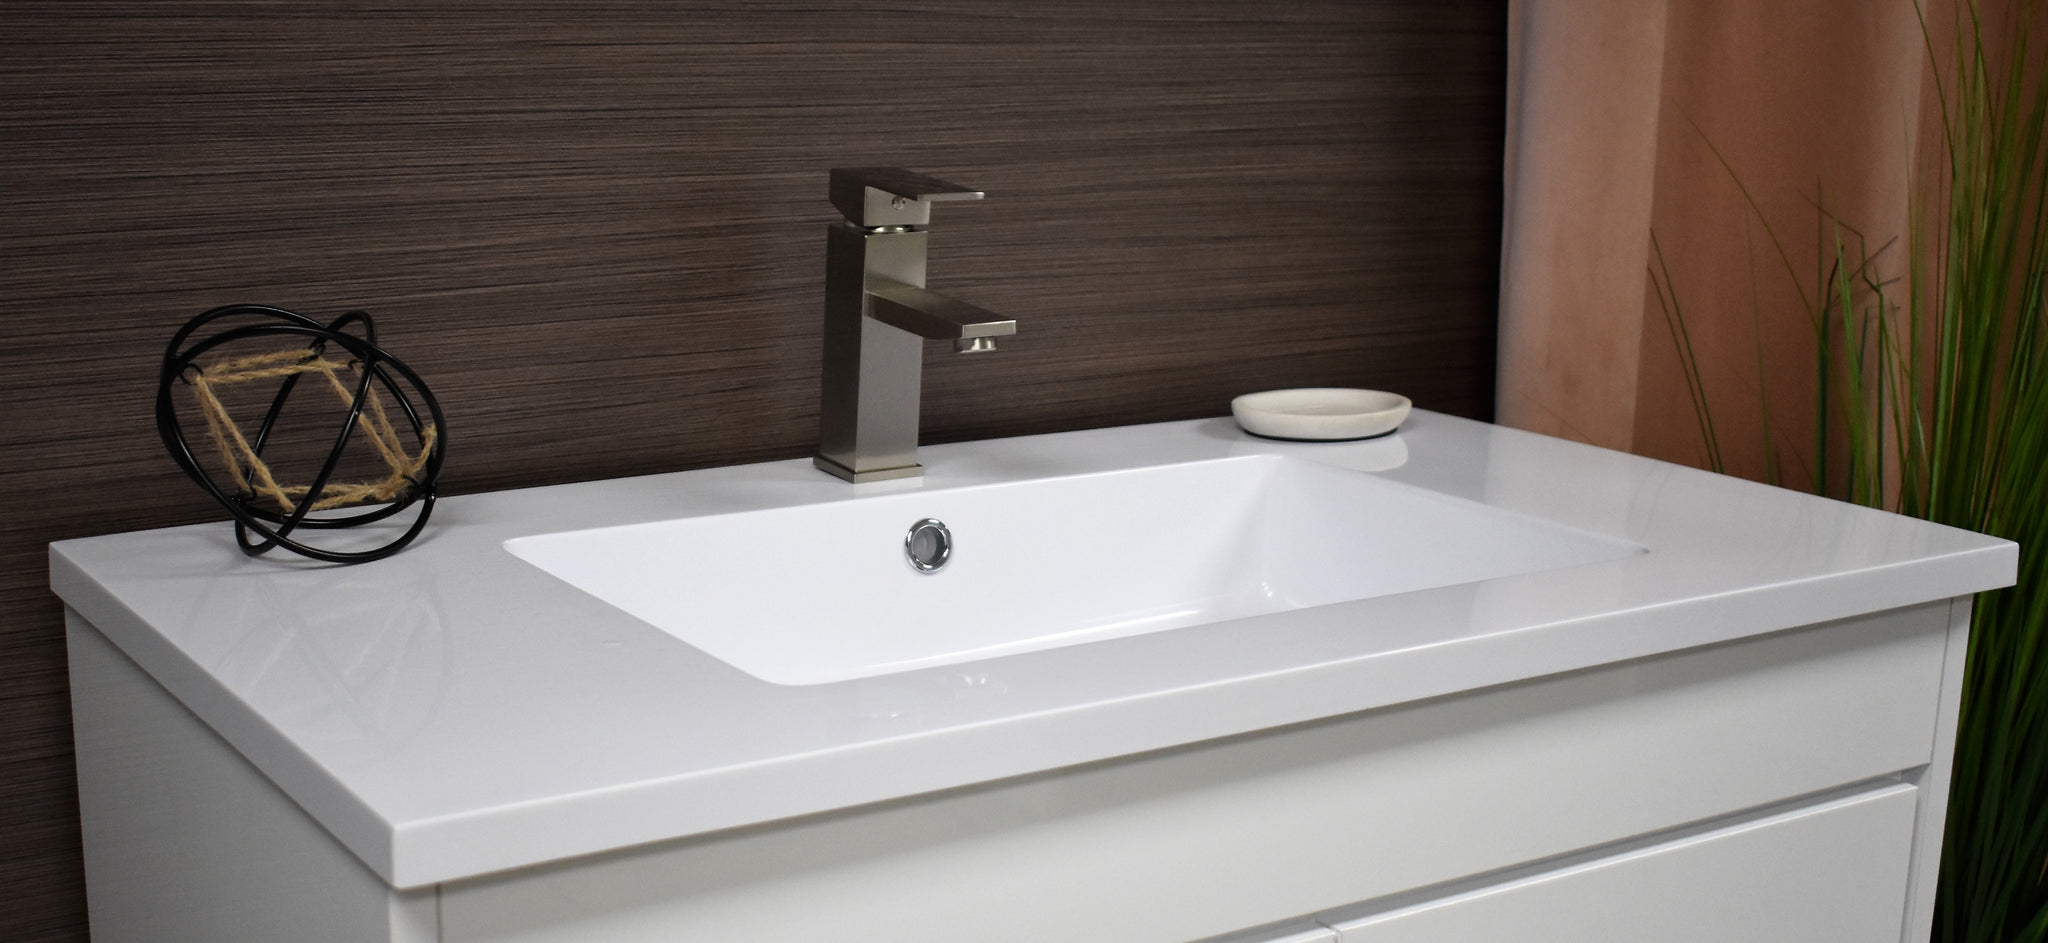 "Rio 36"" Modern Bathroom Vanity in White with Acrylic Top and Brushed Nickel Handles"